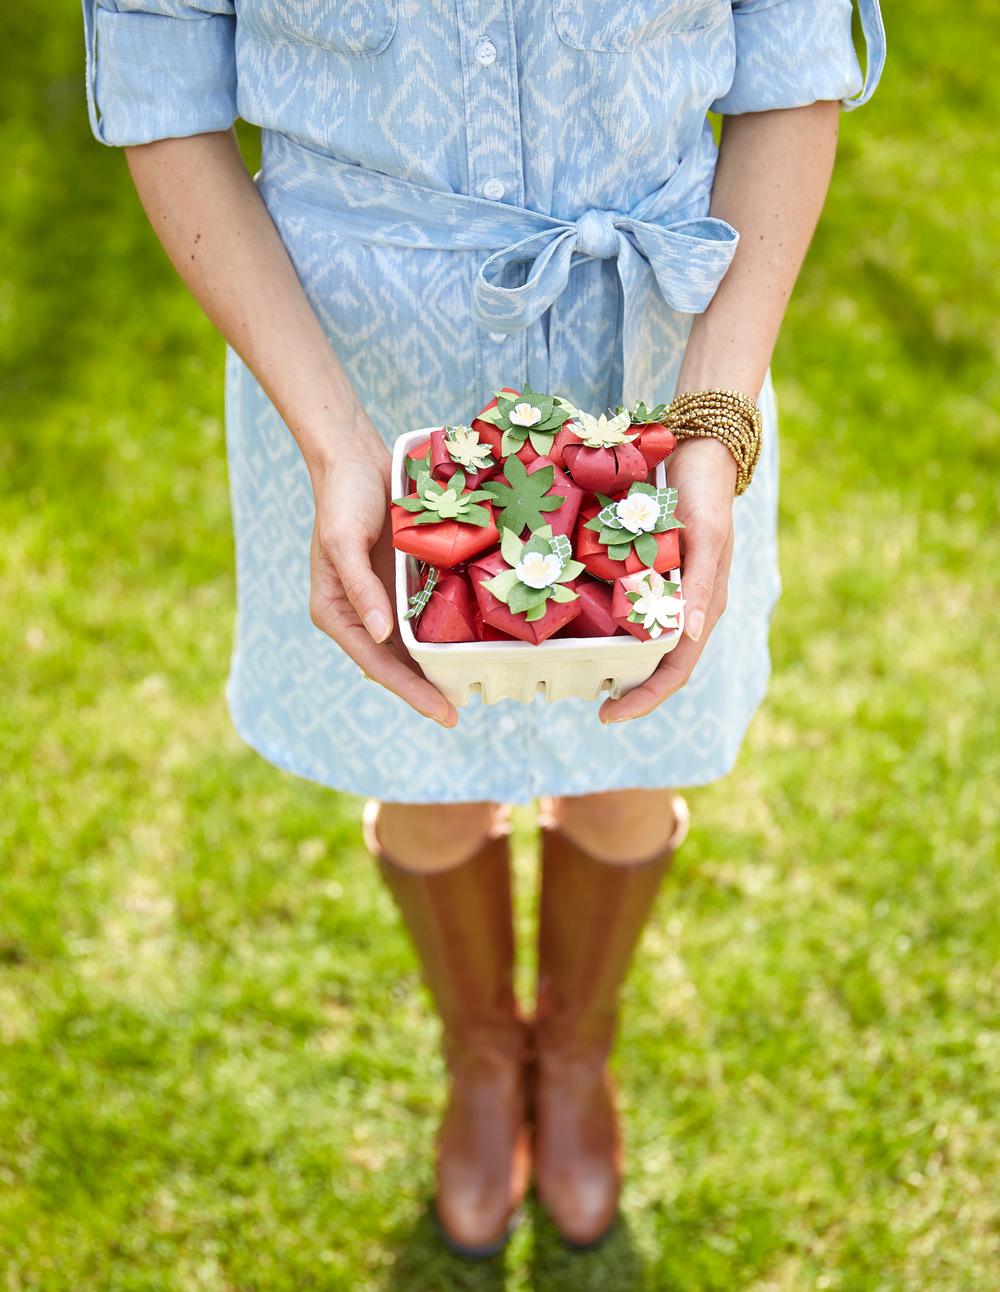 Lifestyle photography Derek Israelsen Strawberries Boots